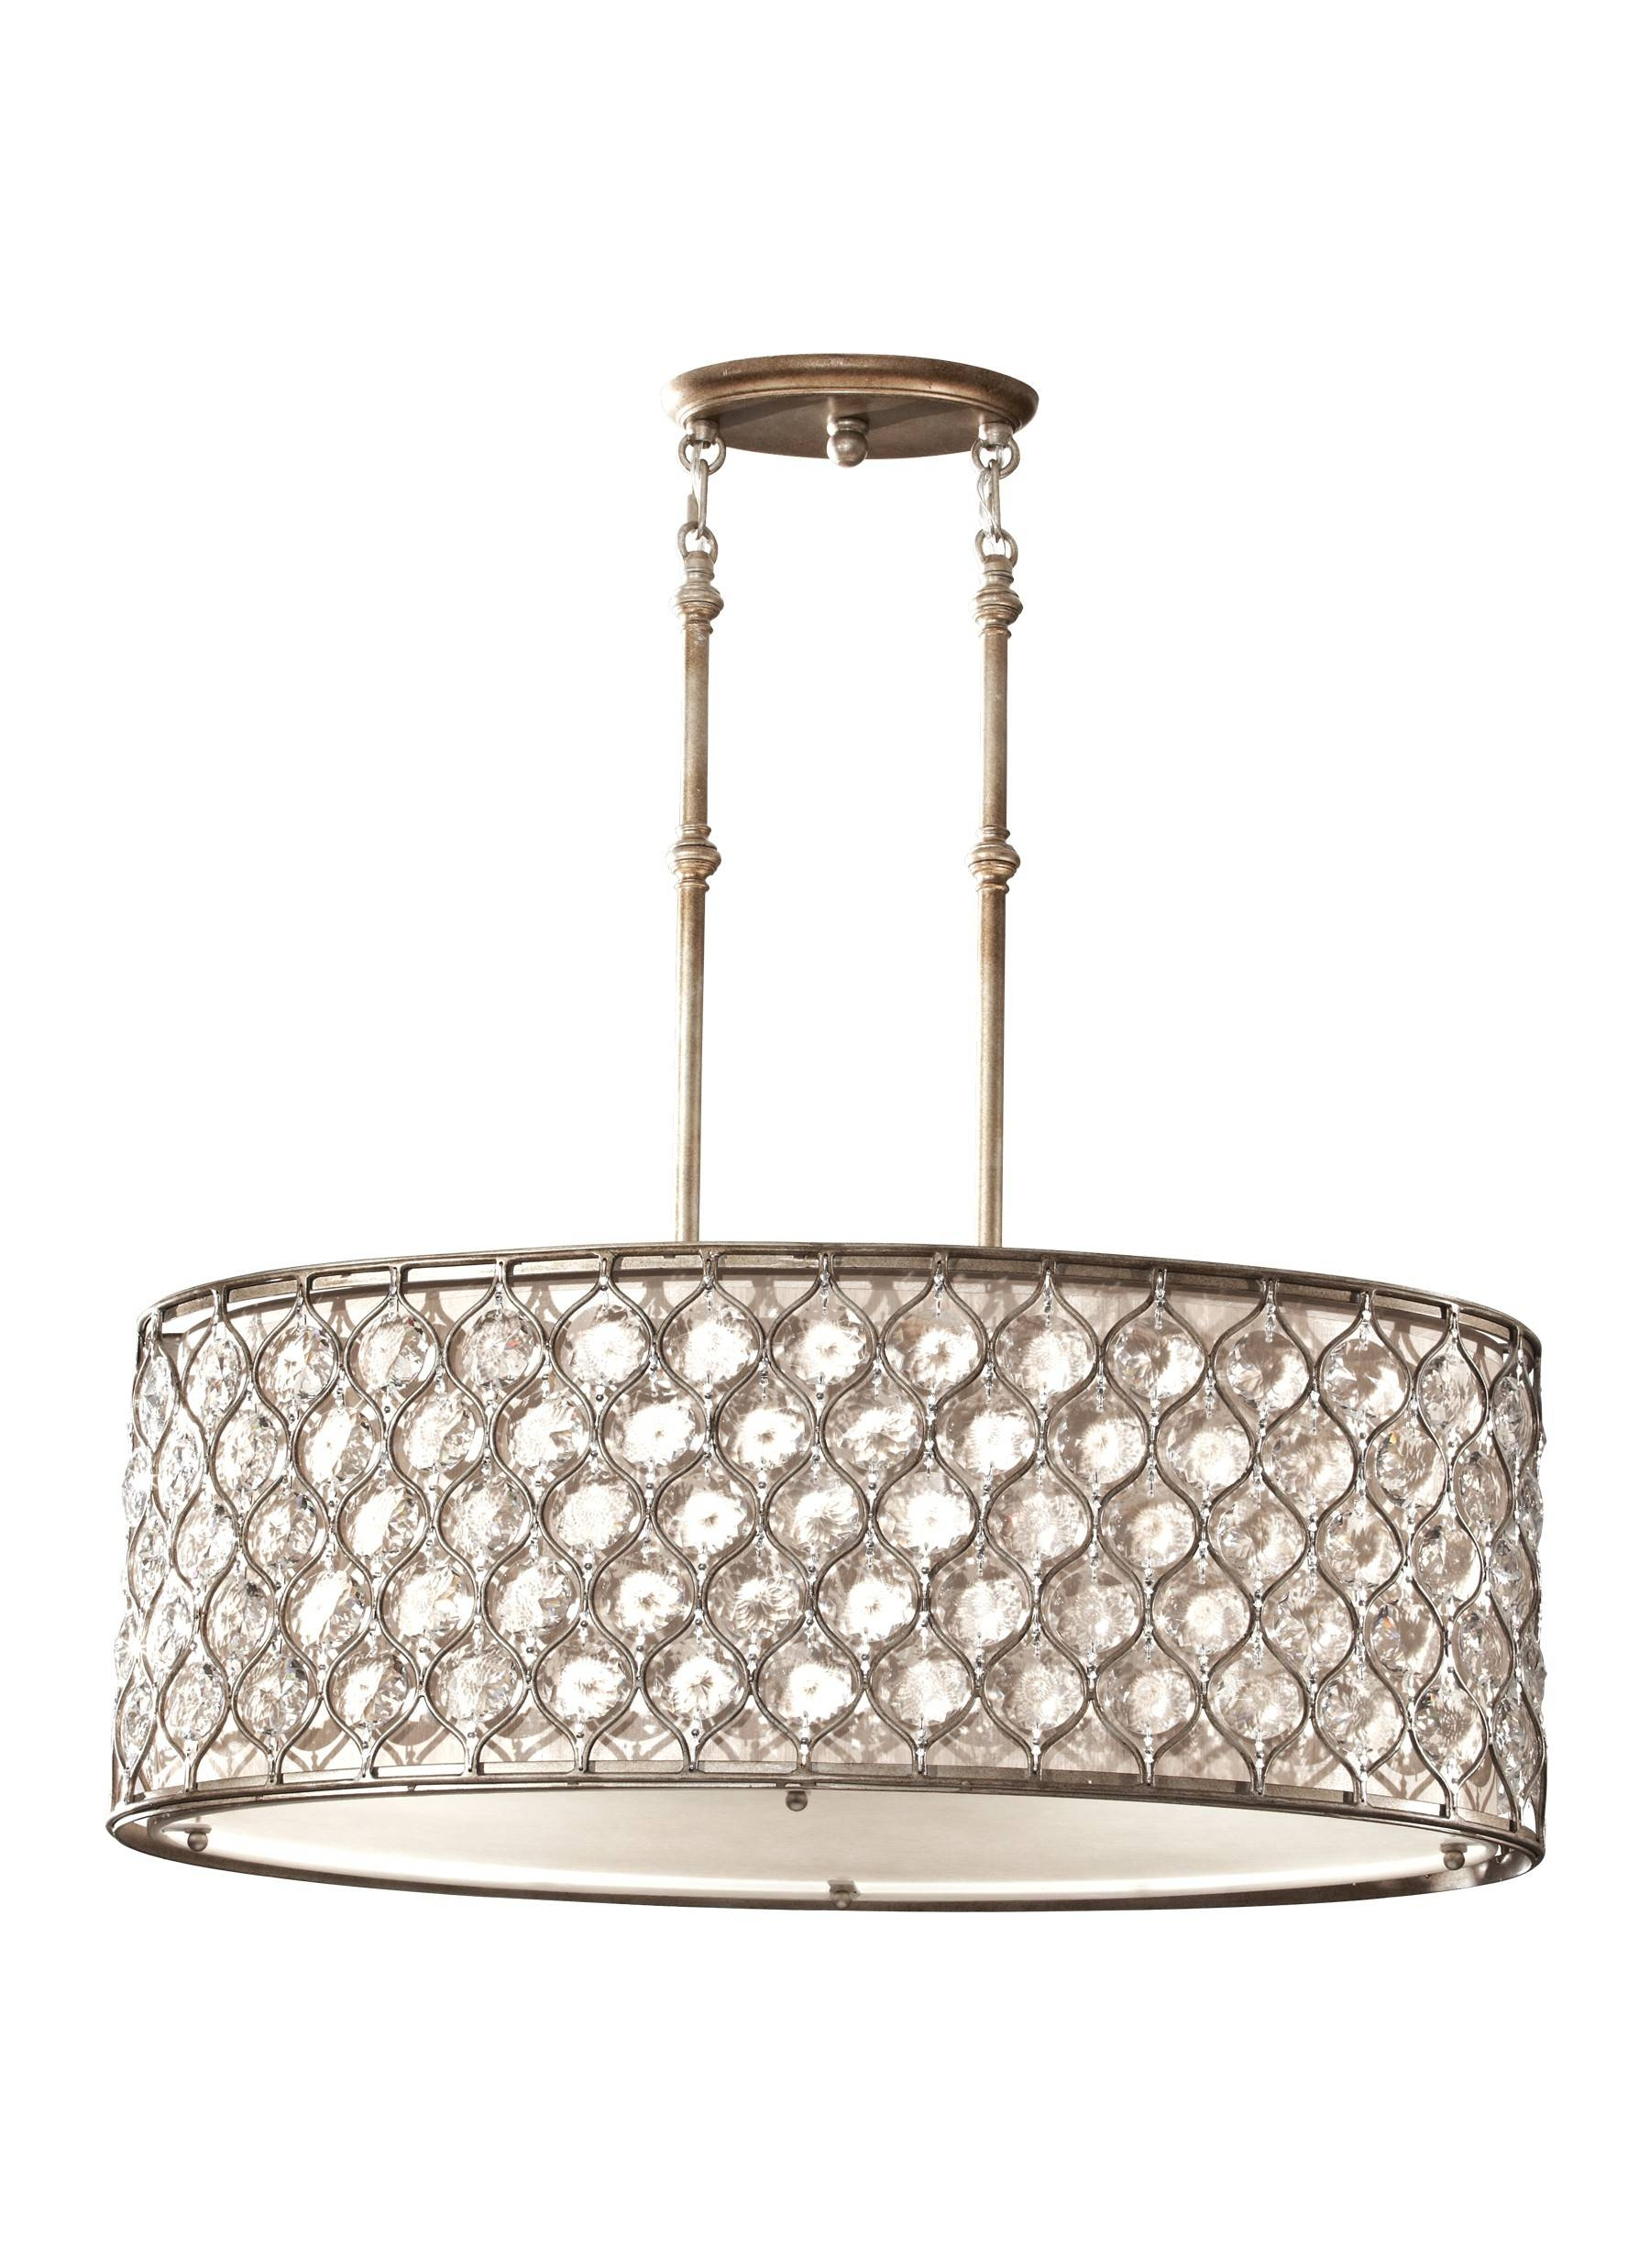 "Feiss Lucia 3-Light 32"" Burnished Silver Finish Oval Pendant regarding Oval Pendant Lights Fixtures (Image 6 of 15)"